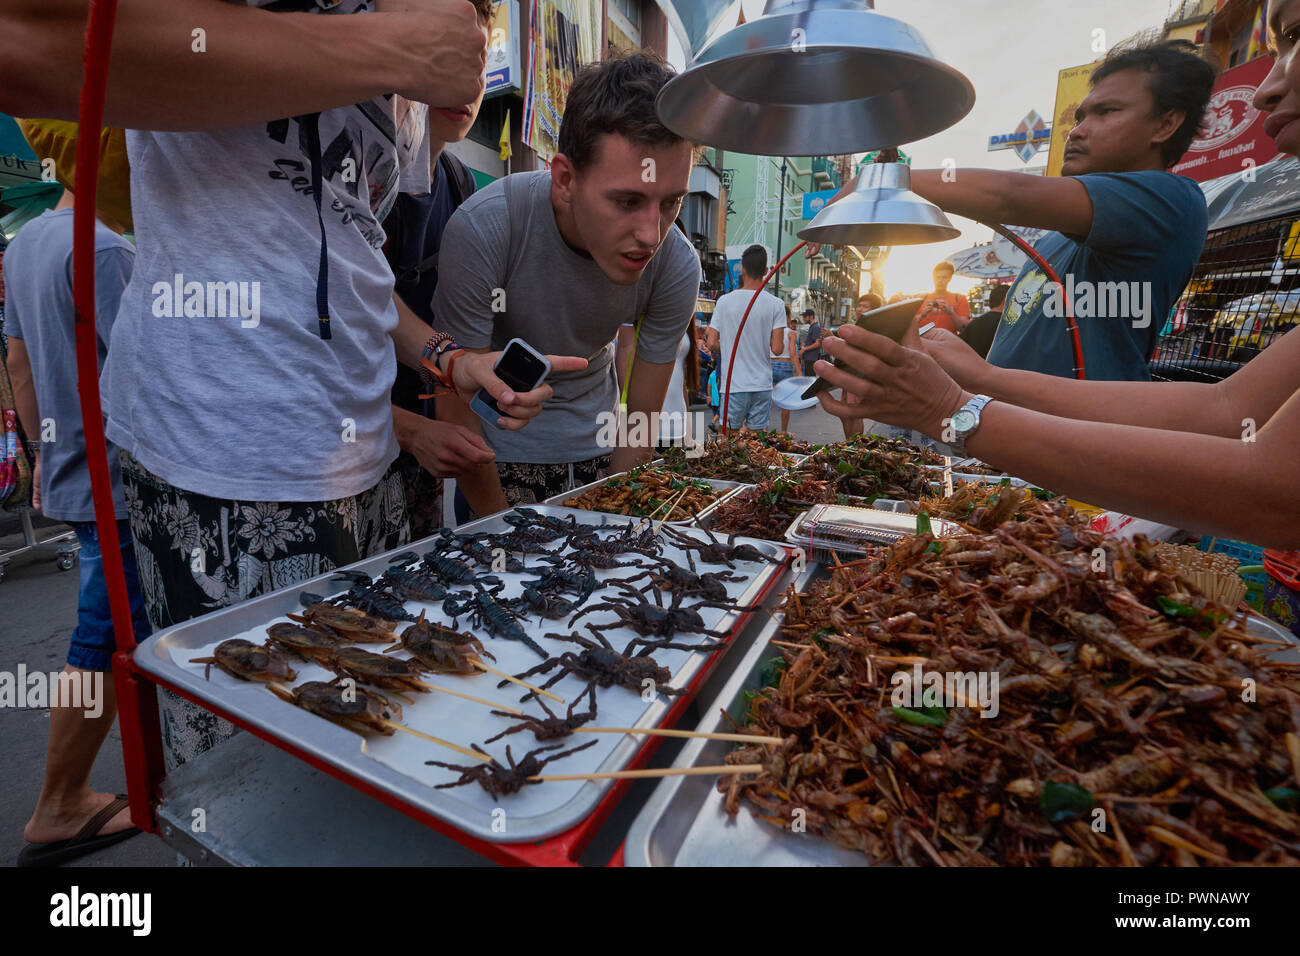 A street stall in Khao San Rd, in Banglamphoo area, Bangkok, Thailand, offering edible scorpions, tarantulas, grasshoppers and all manner of bugs - Stock Image